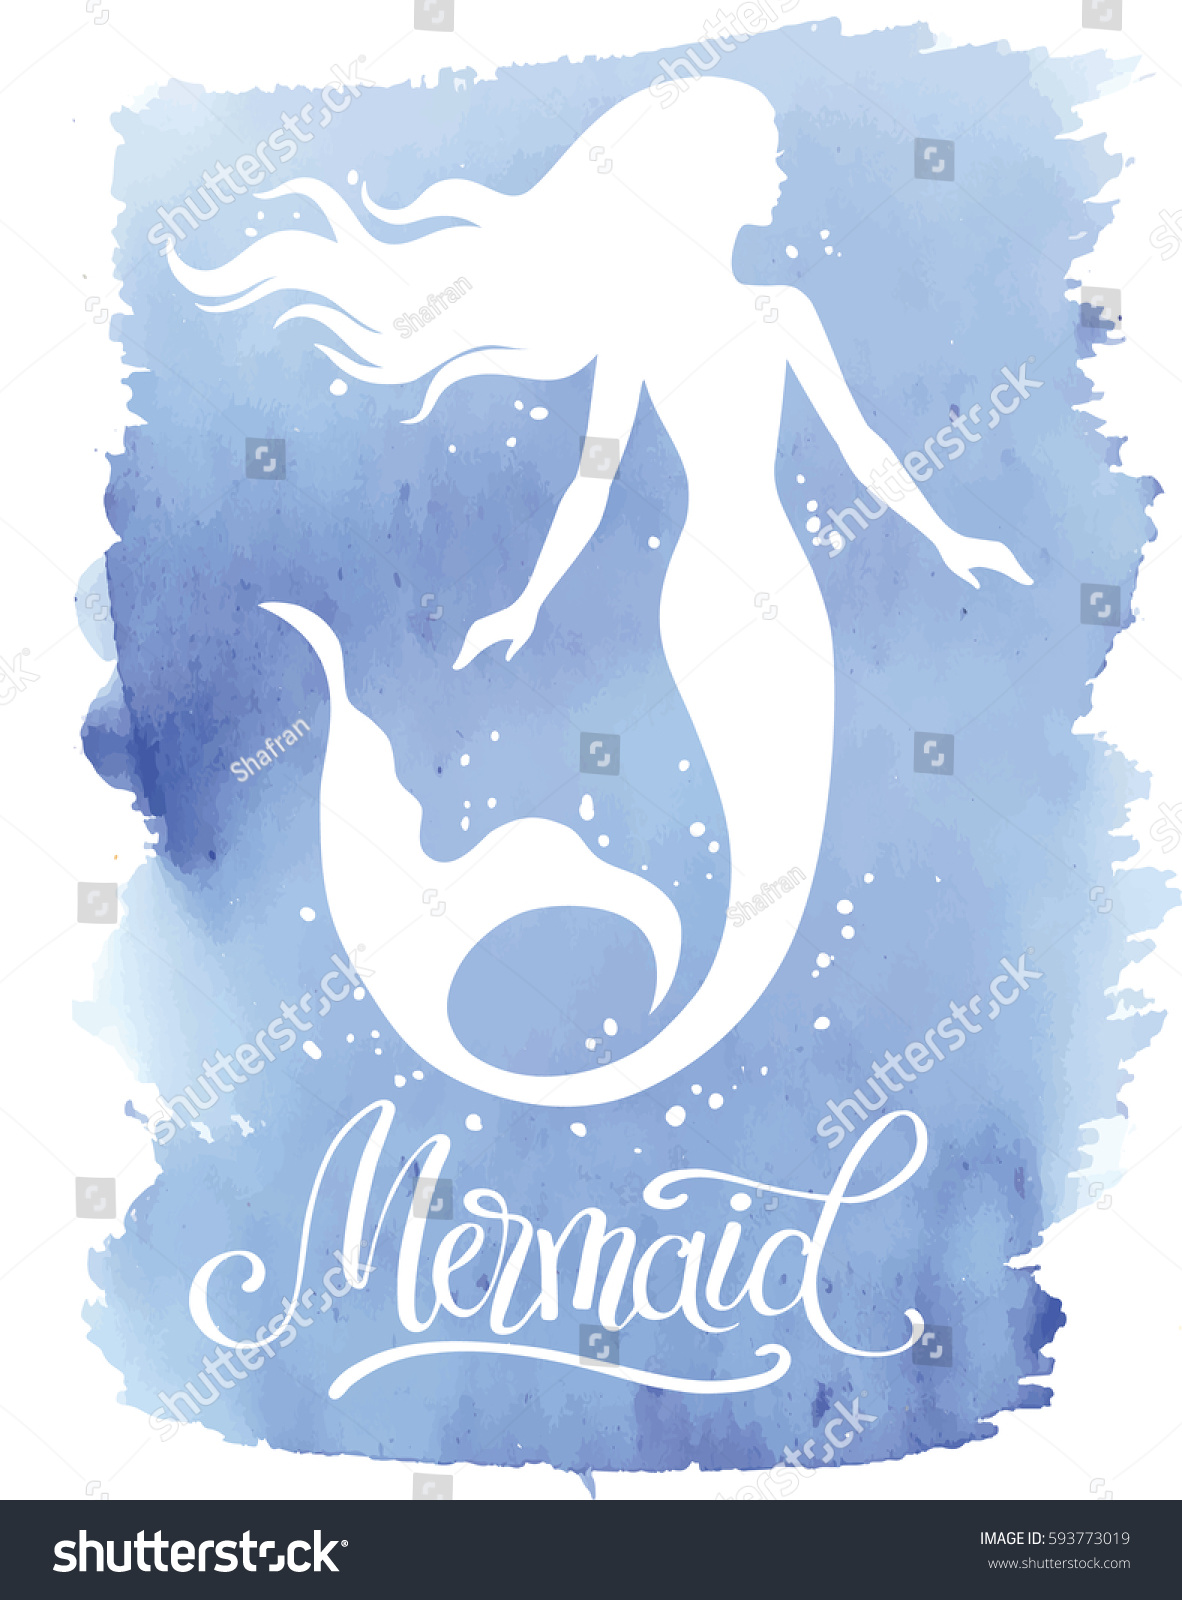 Hand painted mermaid watercolor vector silhouette stock vector - Mermaid Hand Drawn Vector Silhouette Illustration On Watercolor Background